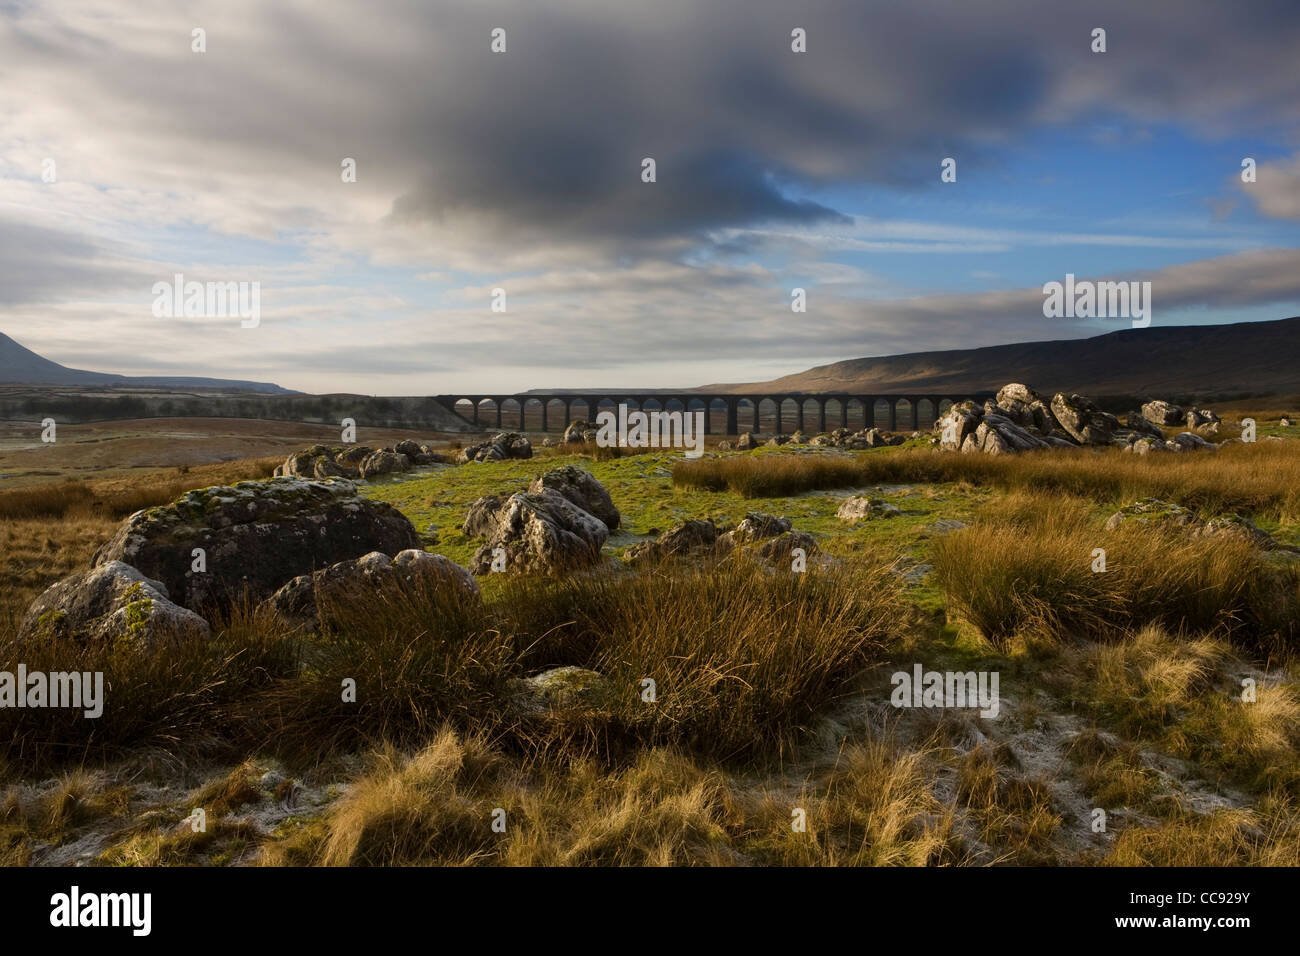 Limestone Pavement at the Ribblehead Viaduct across the River Ribble at Ribblehead, in North Yorkshire, UK - Stock Image